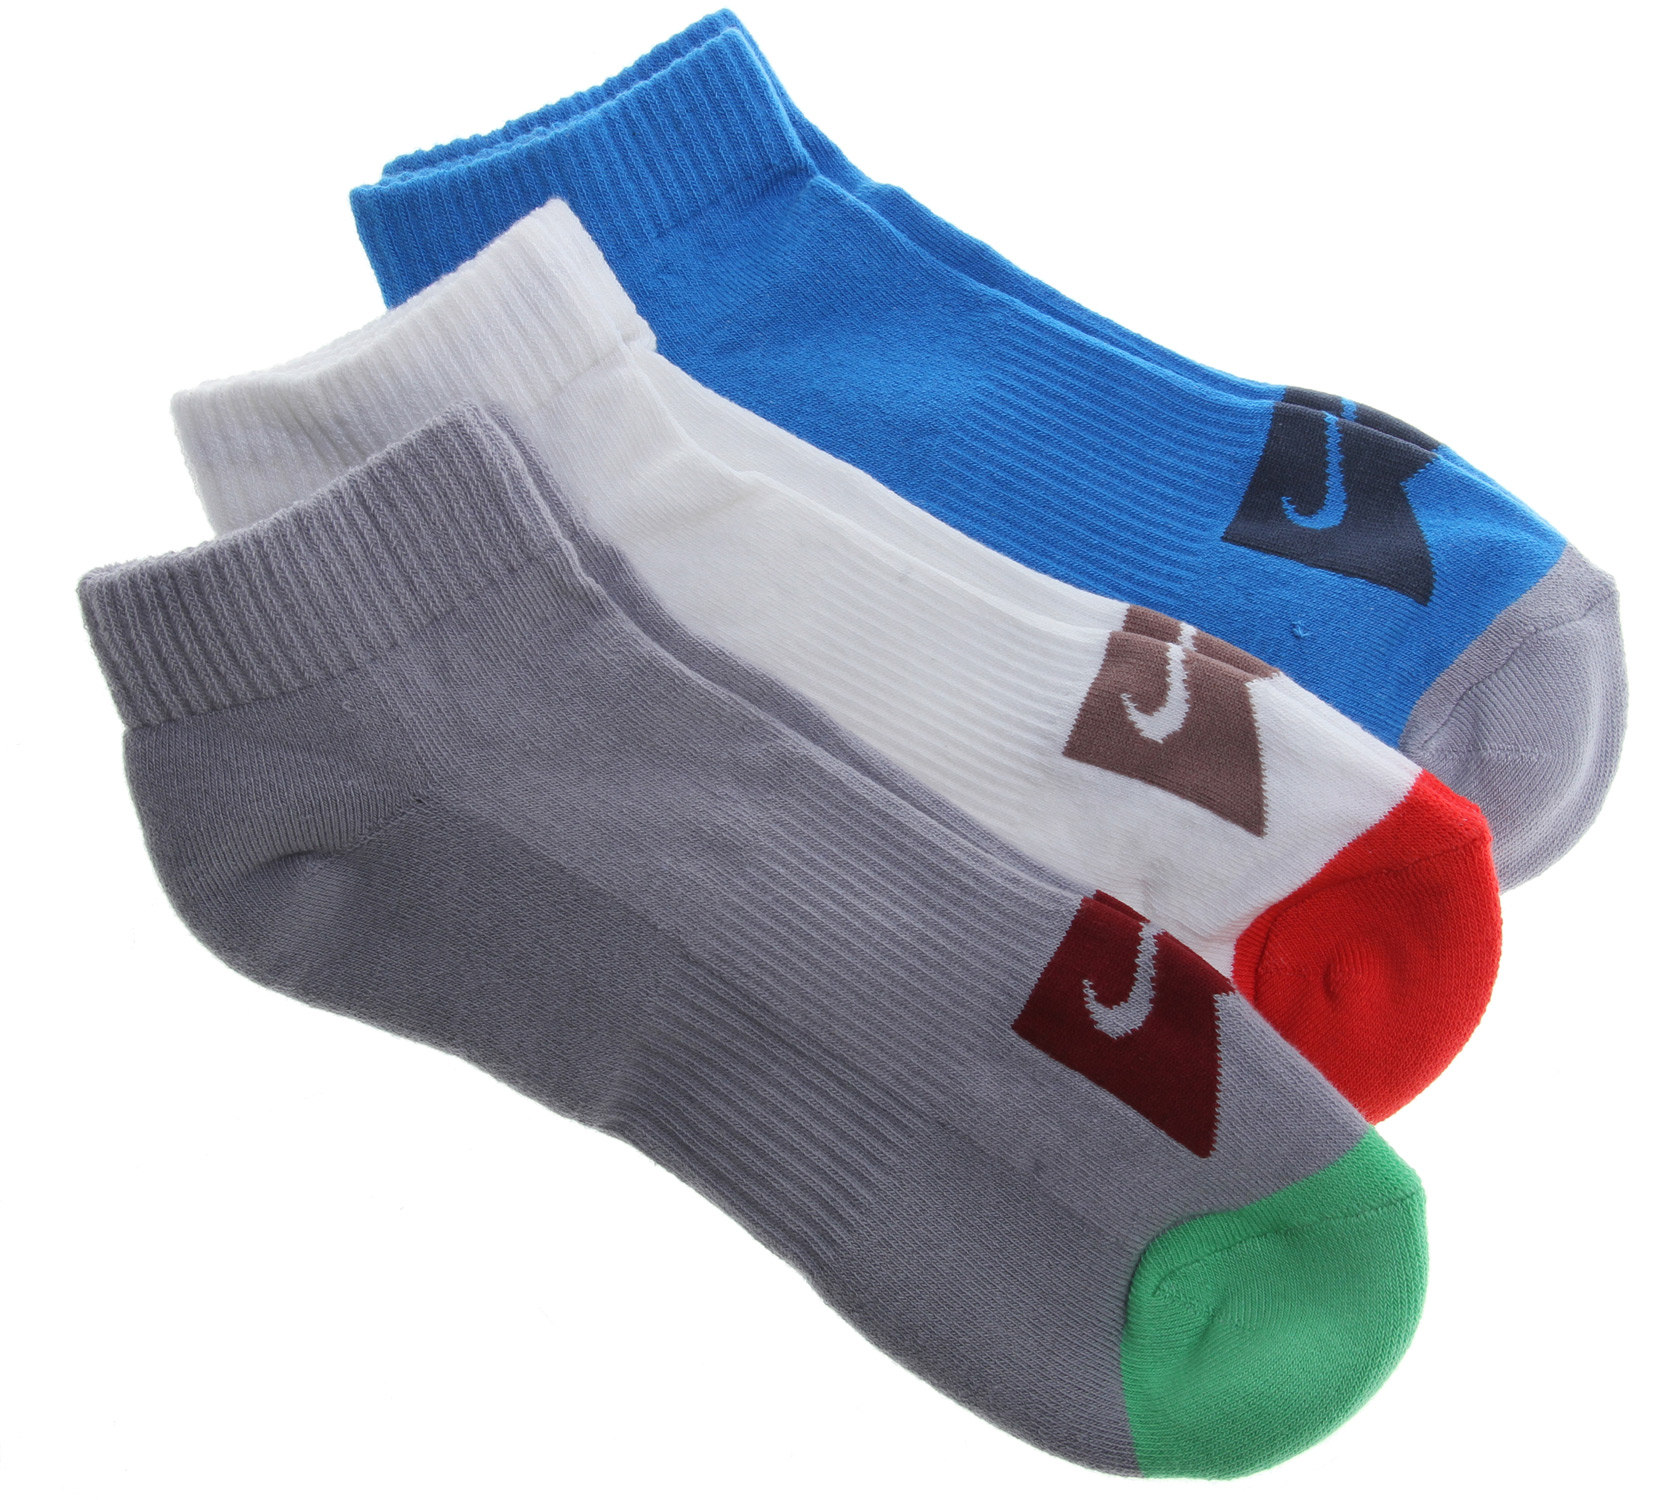 Skateboard Key Features of the Nike Skate Dri-Fit Ankle 3Pk Socks: Half-cushion terry foot Comfort and shock-absorption Dri-FIT fabric helps wick away moisture, keeps feet dry and cool Arch support for a snug, secure fit 57% cotton/30% polyester/11% nylon/2% spandex. - $14.95